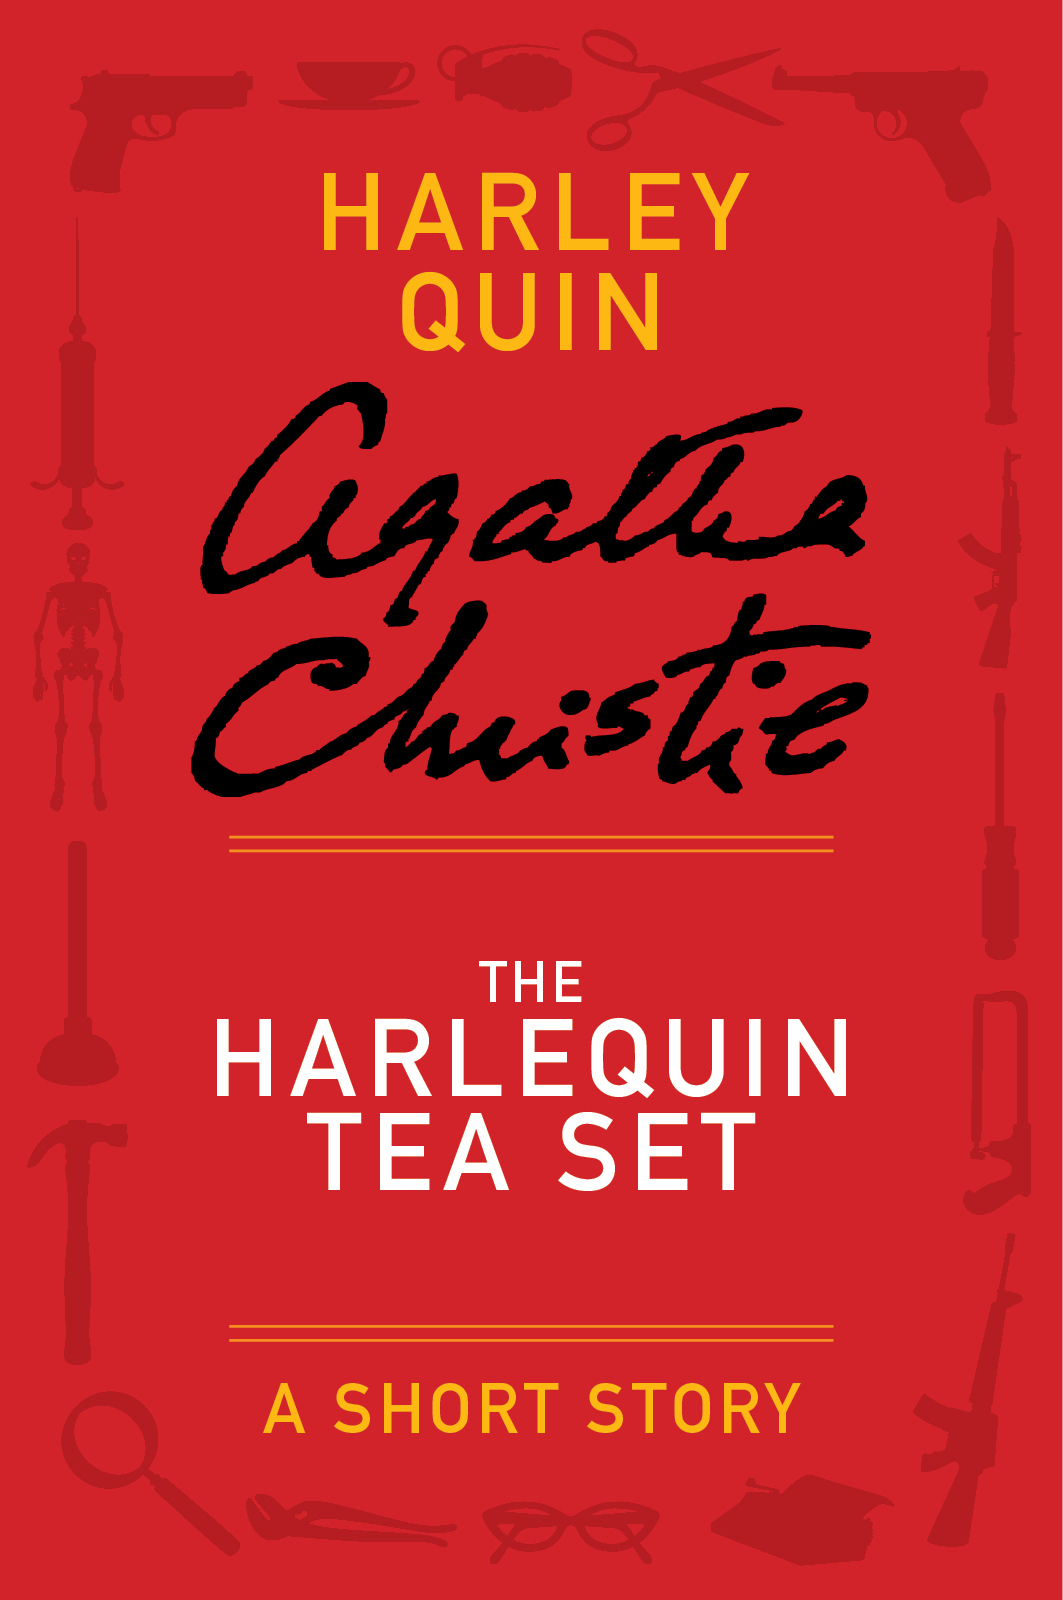 Harlequin-Tea-Set